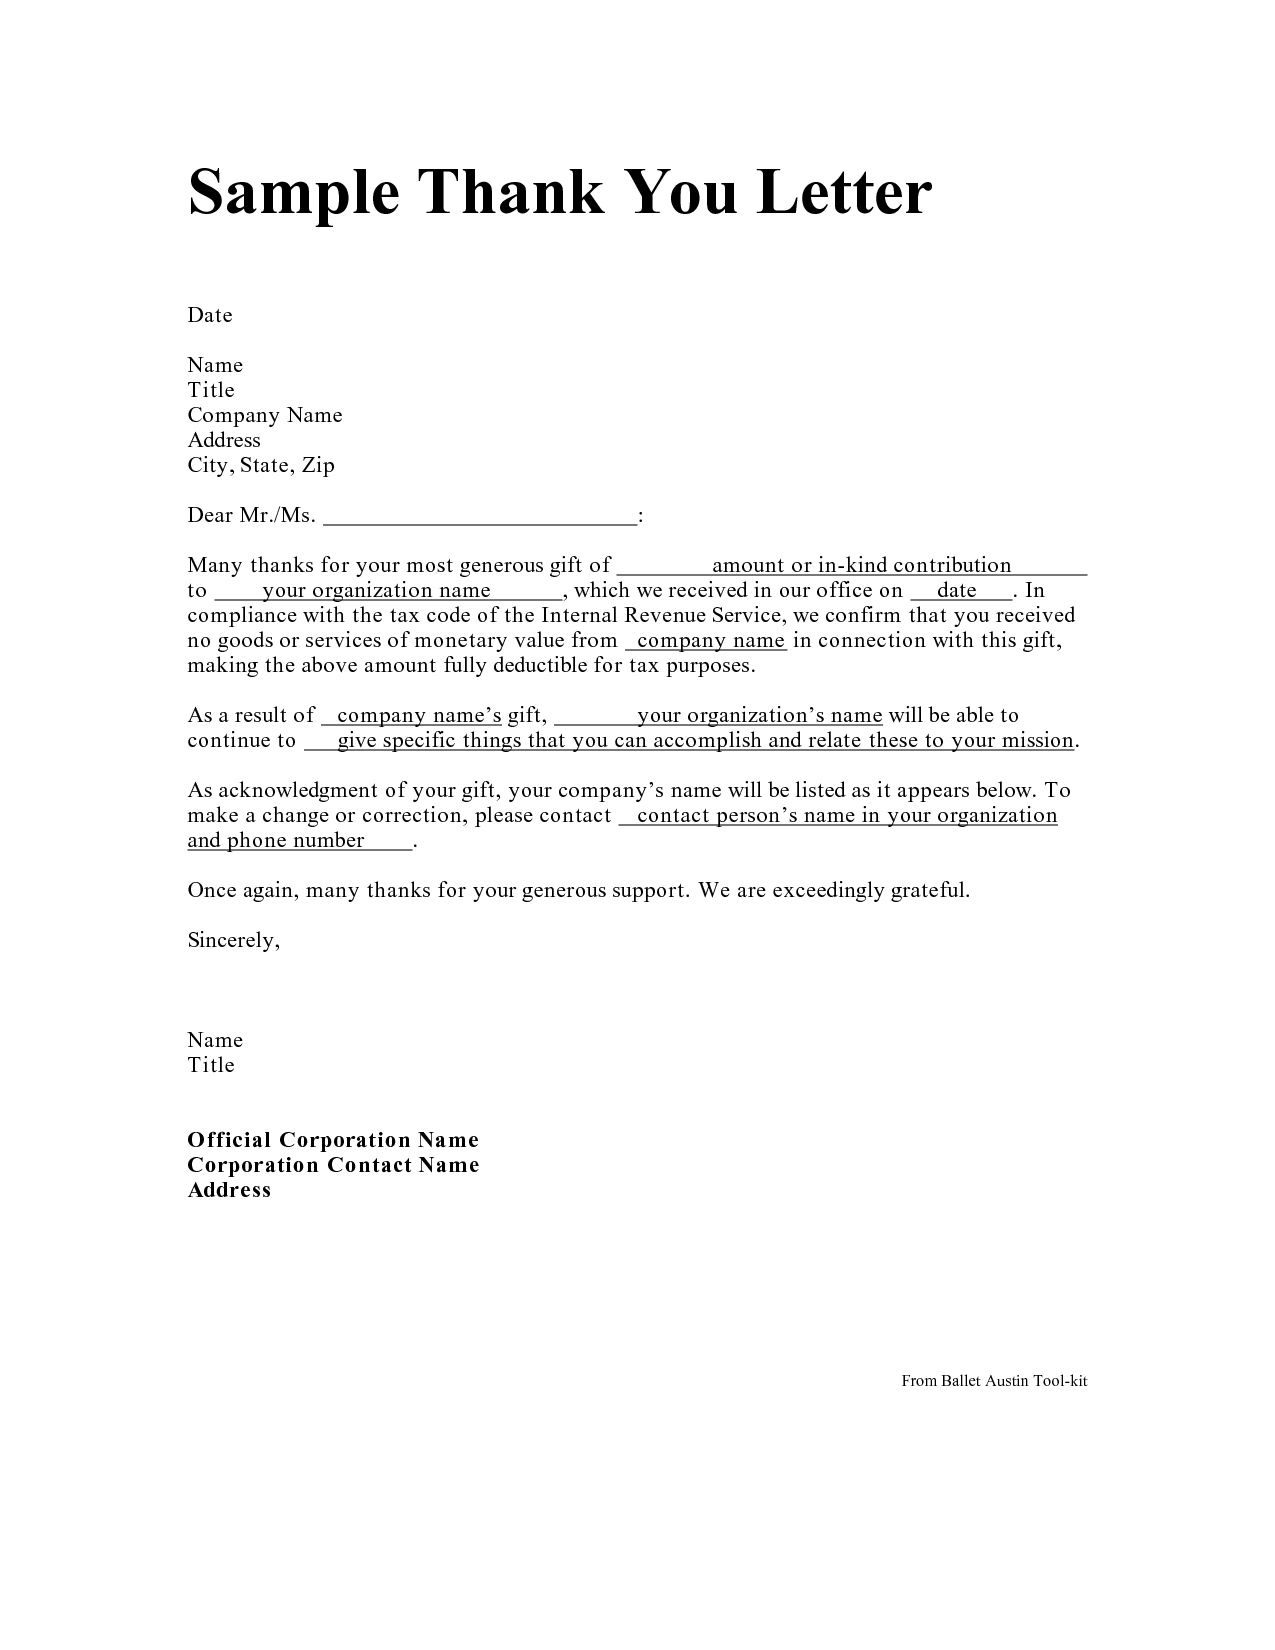 Child Support Modification Letter Template - Personal Thank You Letter Personal Thank You Letter Samples